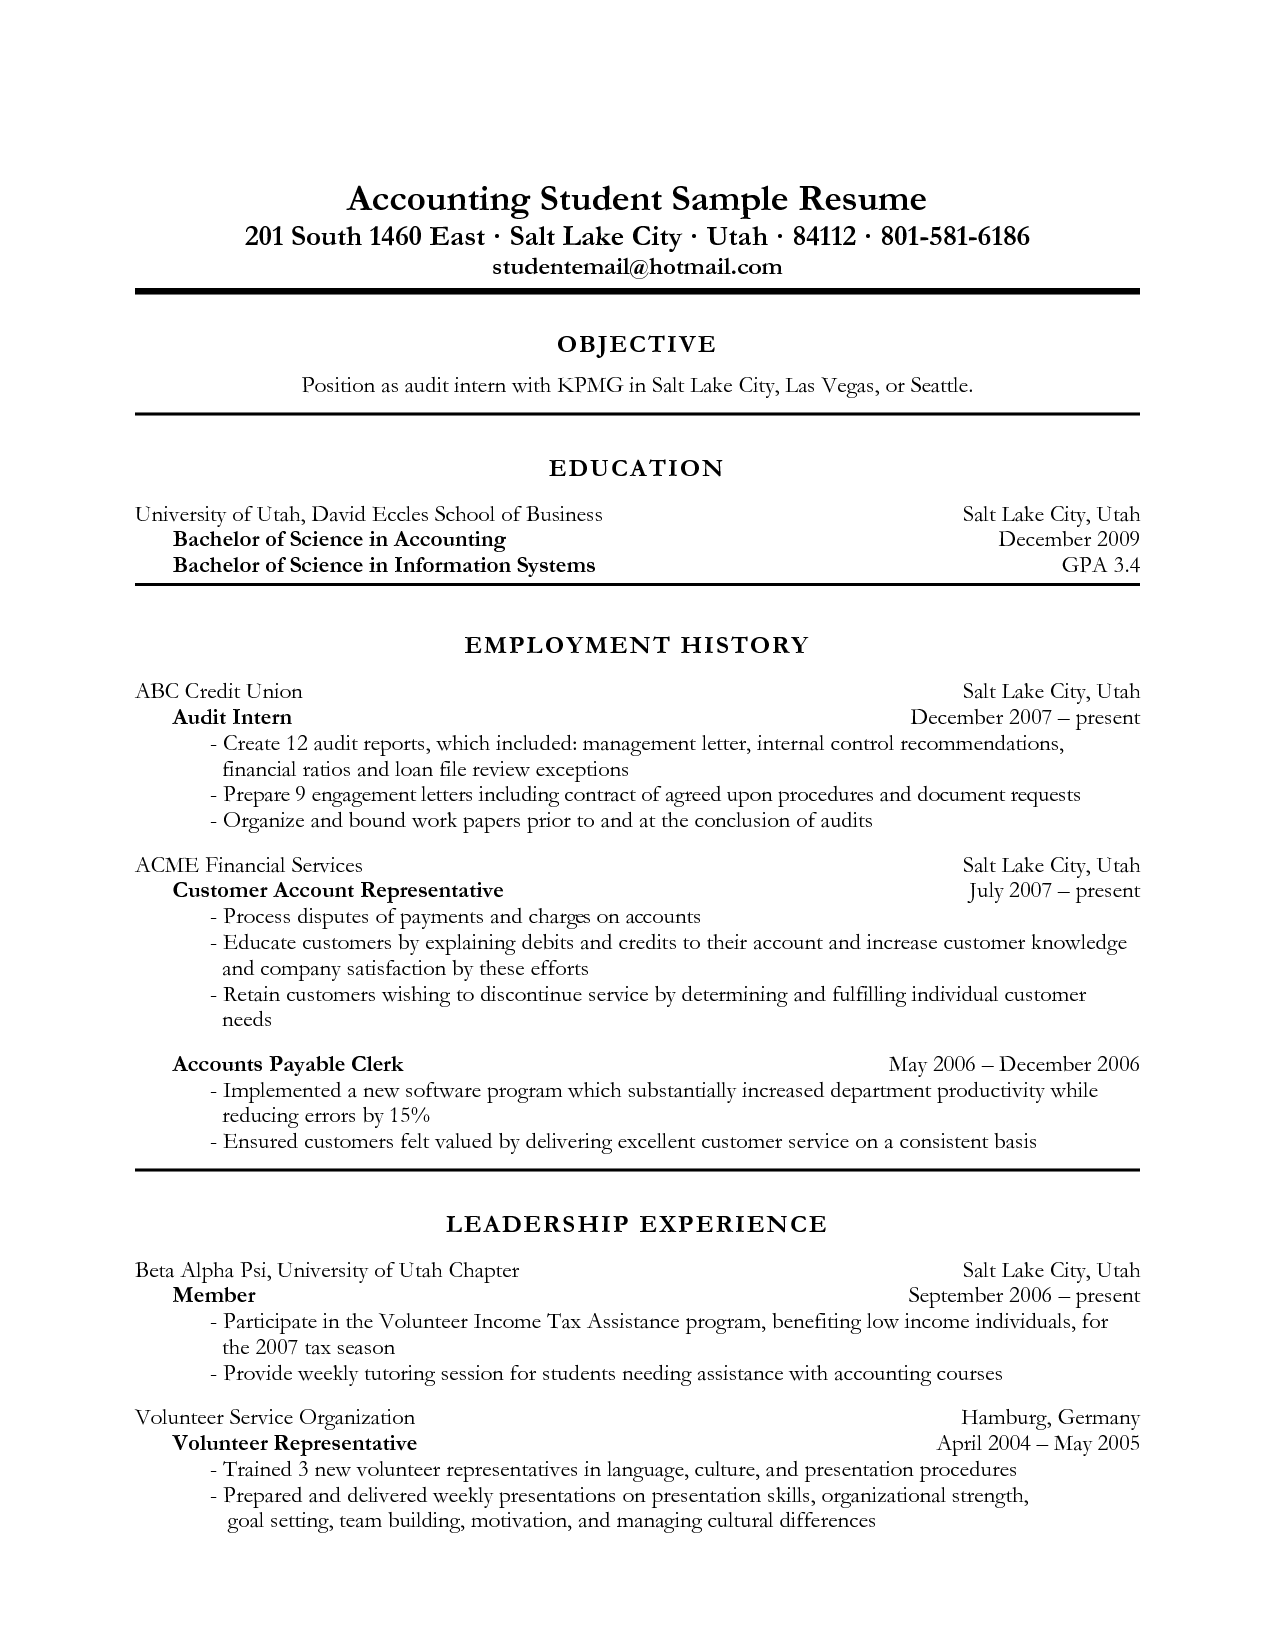 Accounting Intern Resume Accounting Resume Objective Examples  Cover Latter Sample